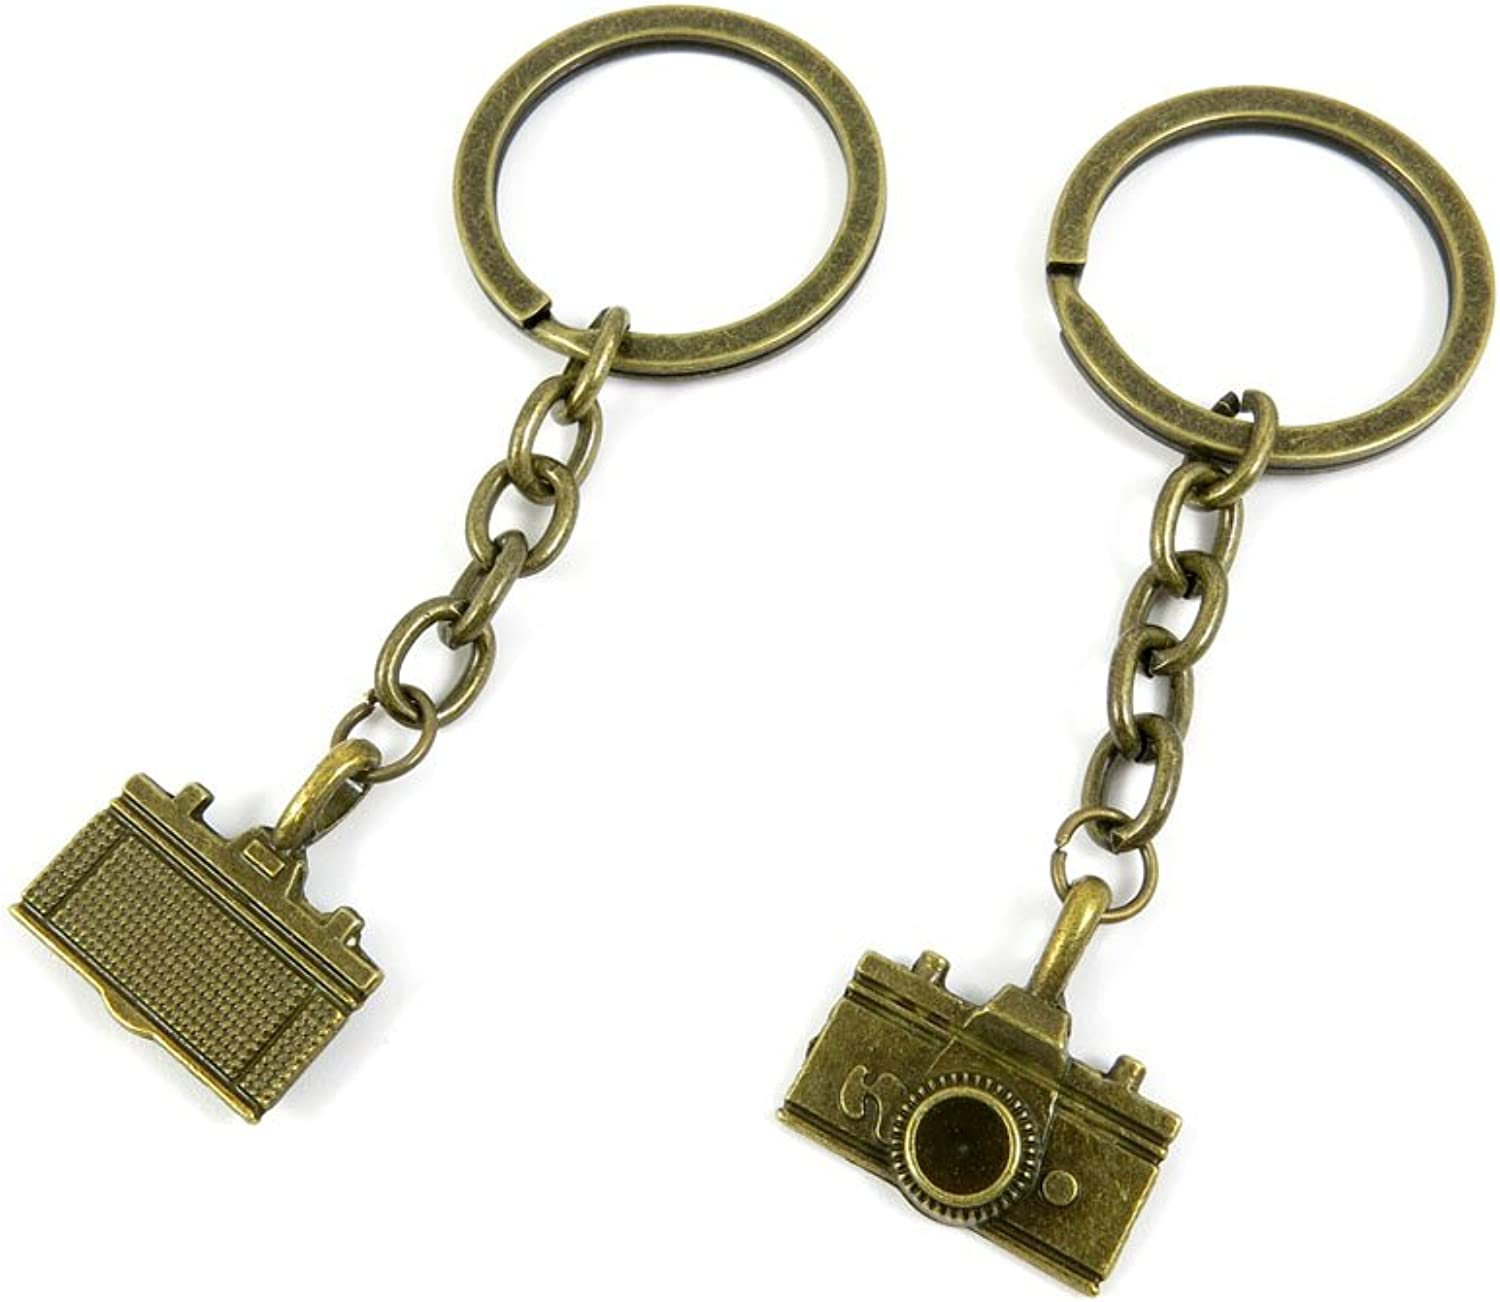 100 PCS Keyrings Keychains Key Ring Chains Tags Jewelry Findings Clasps Buckles Supplies B1RK4 Camera